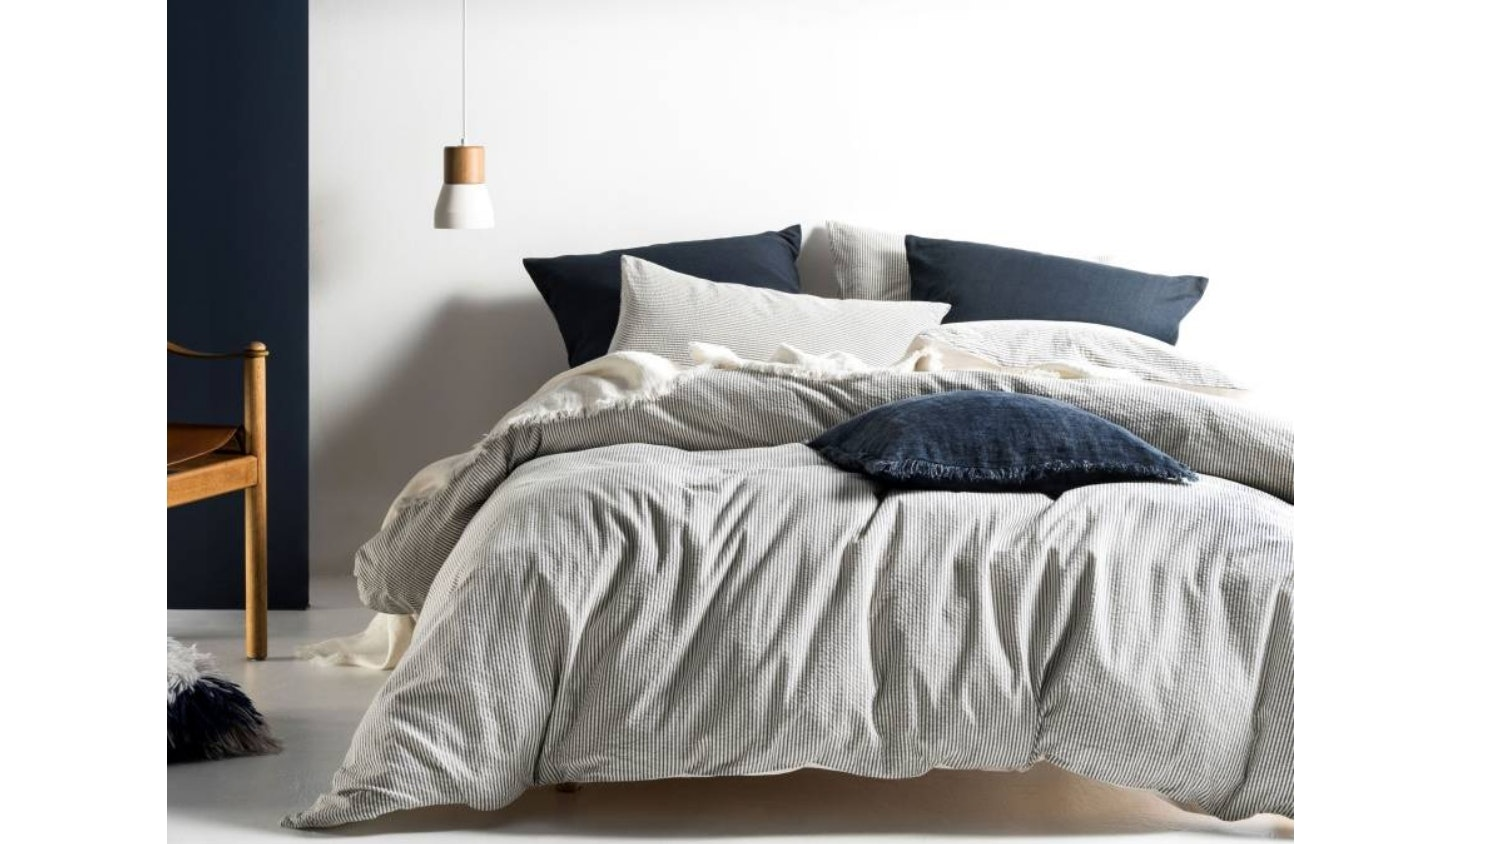 Indigo Bed Linen Part - 41: Add To Wish List Add To Compare List